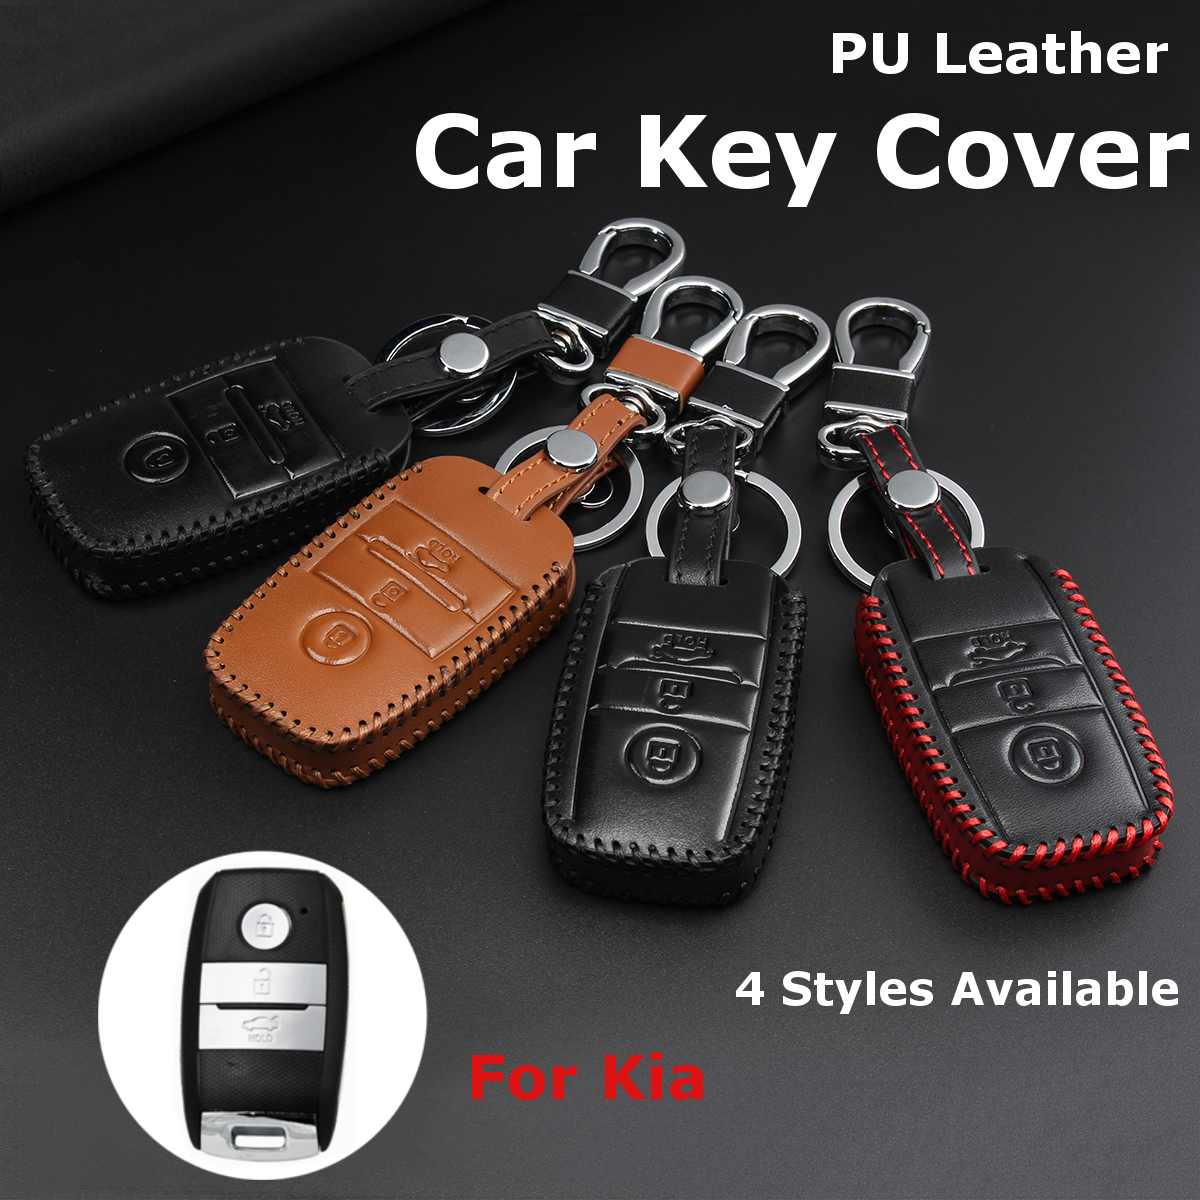 3 Button Leather Car Remote Key Case Cover Protector Holder For Kia KX3 KX5 K3S RIO Ceed Cerato Optima K5 Sportage Sorento